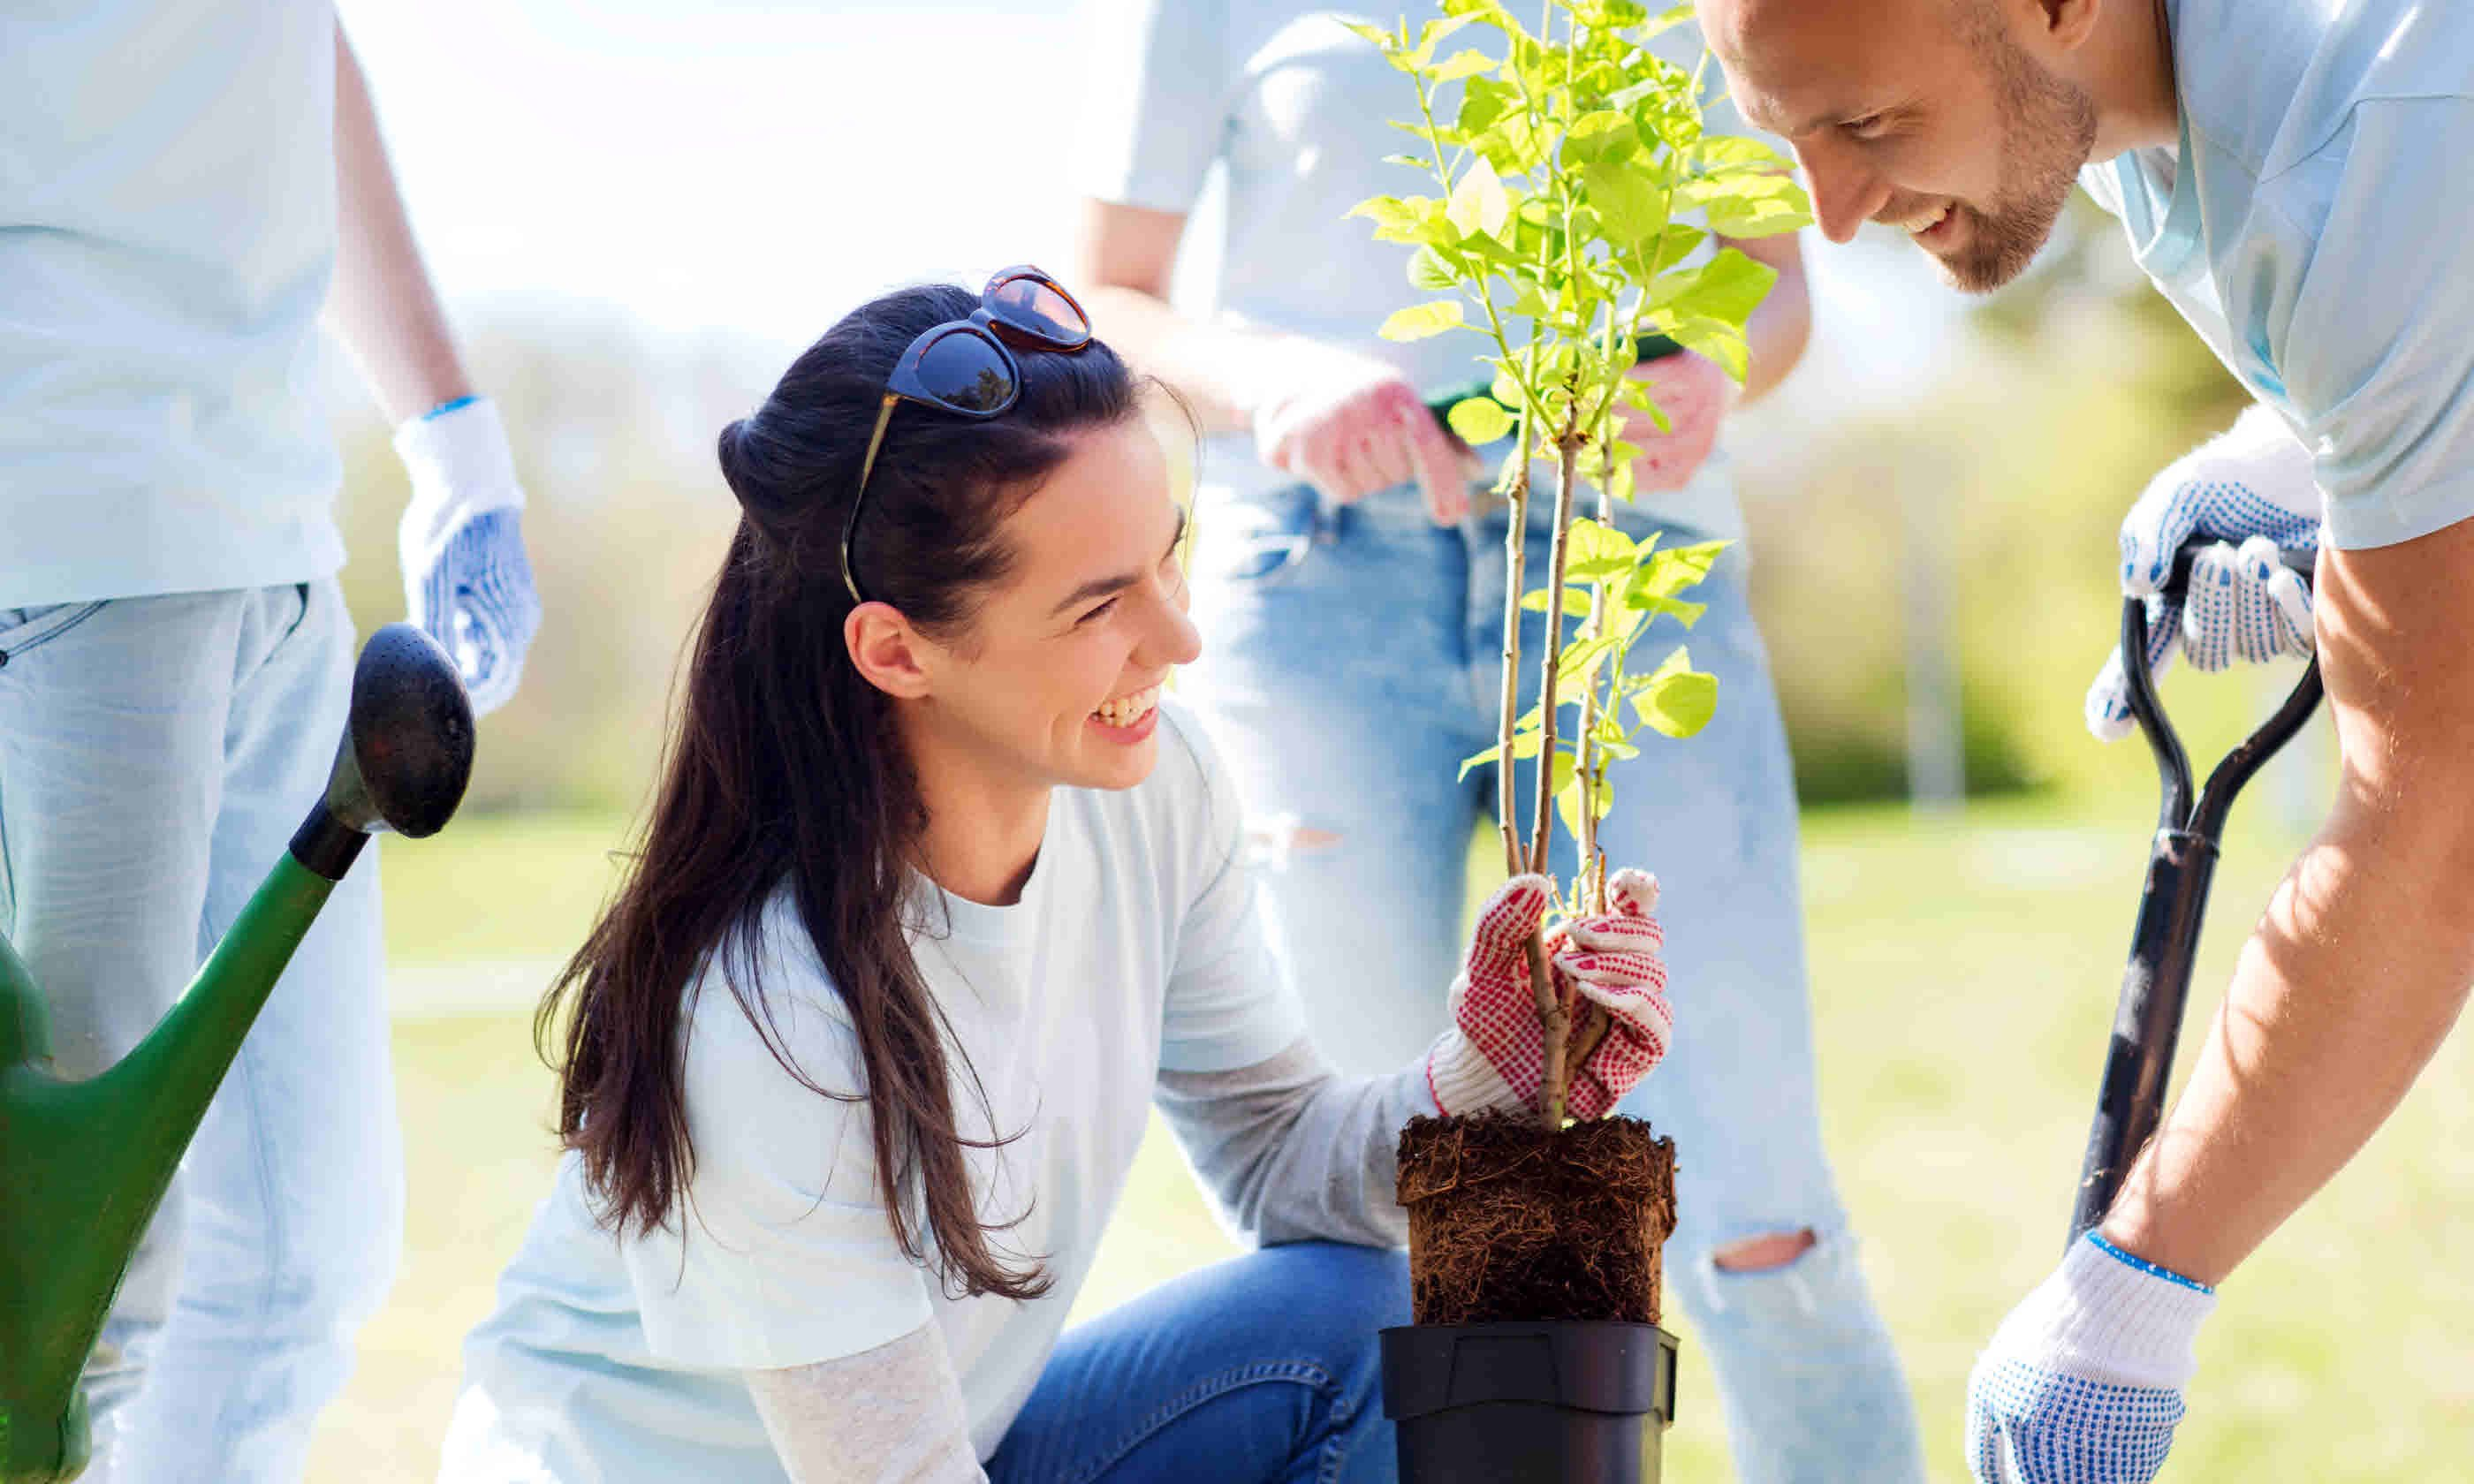 Volunteers planting tree (Shutterstock)